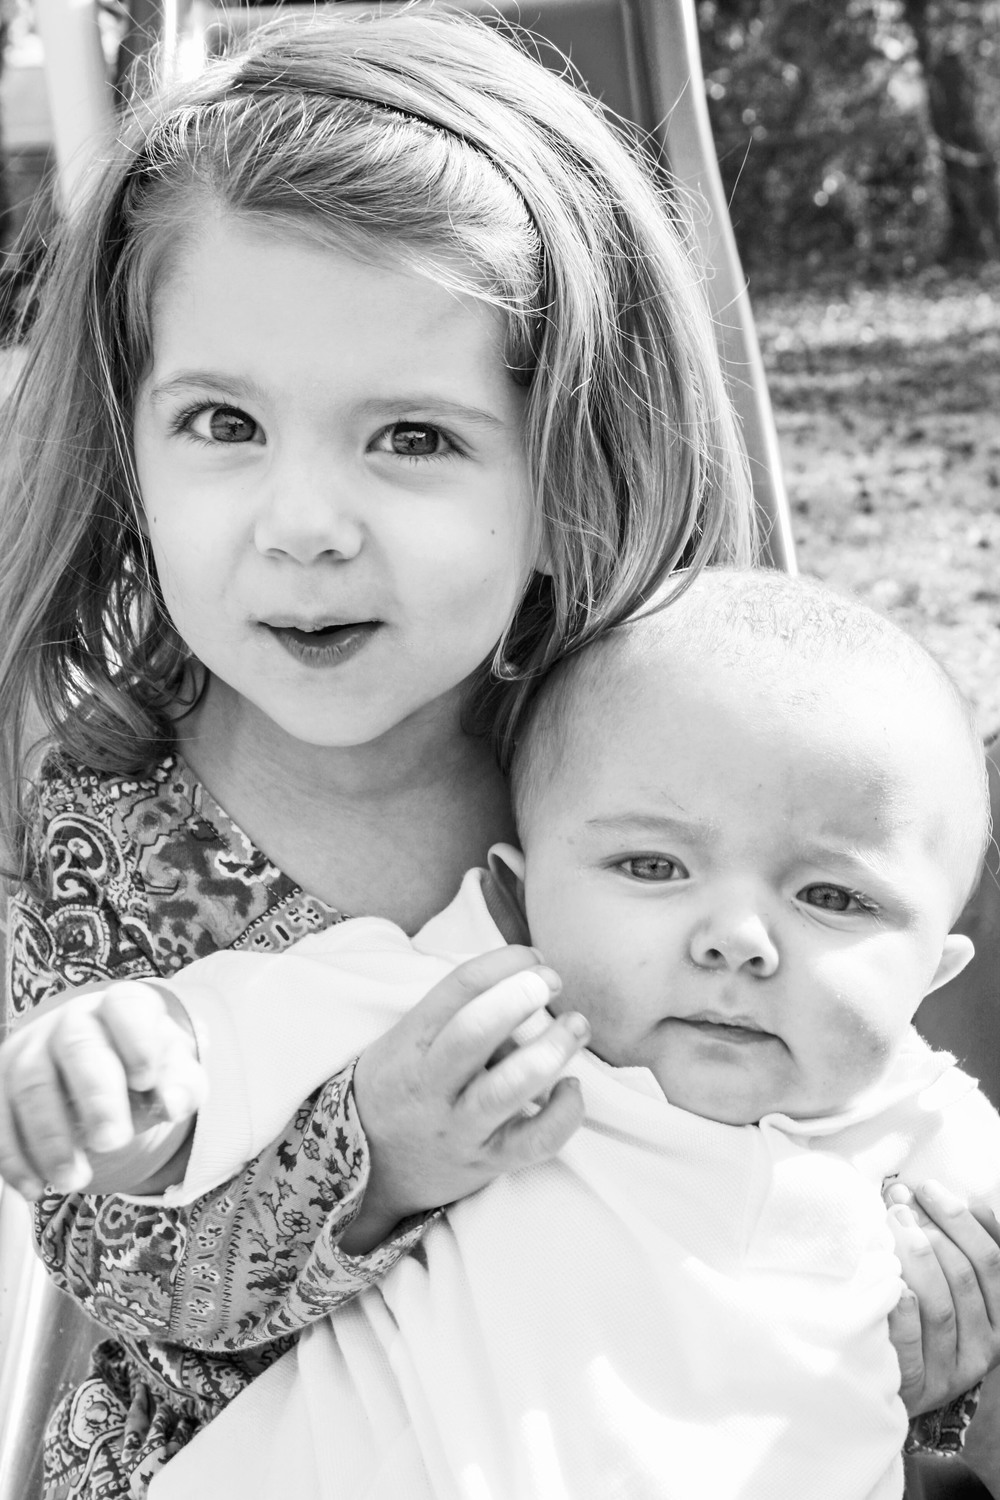 Wilmington_NC_Photographer_Family_Tiffany_Abruzzo_Photography_18.jpg